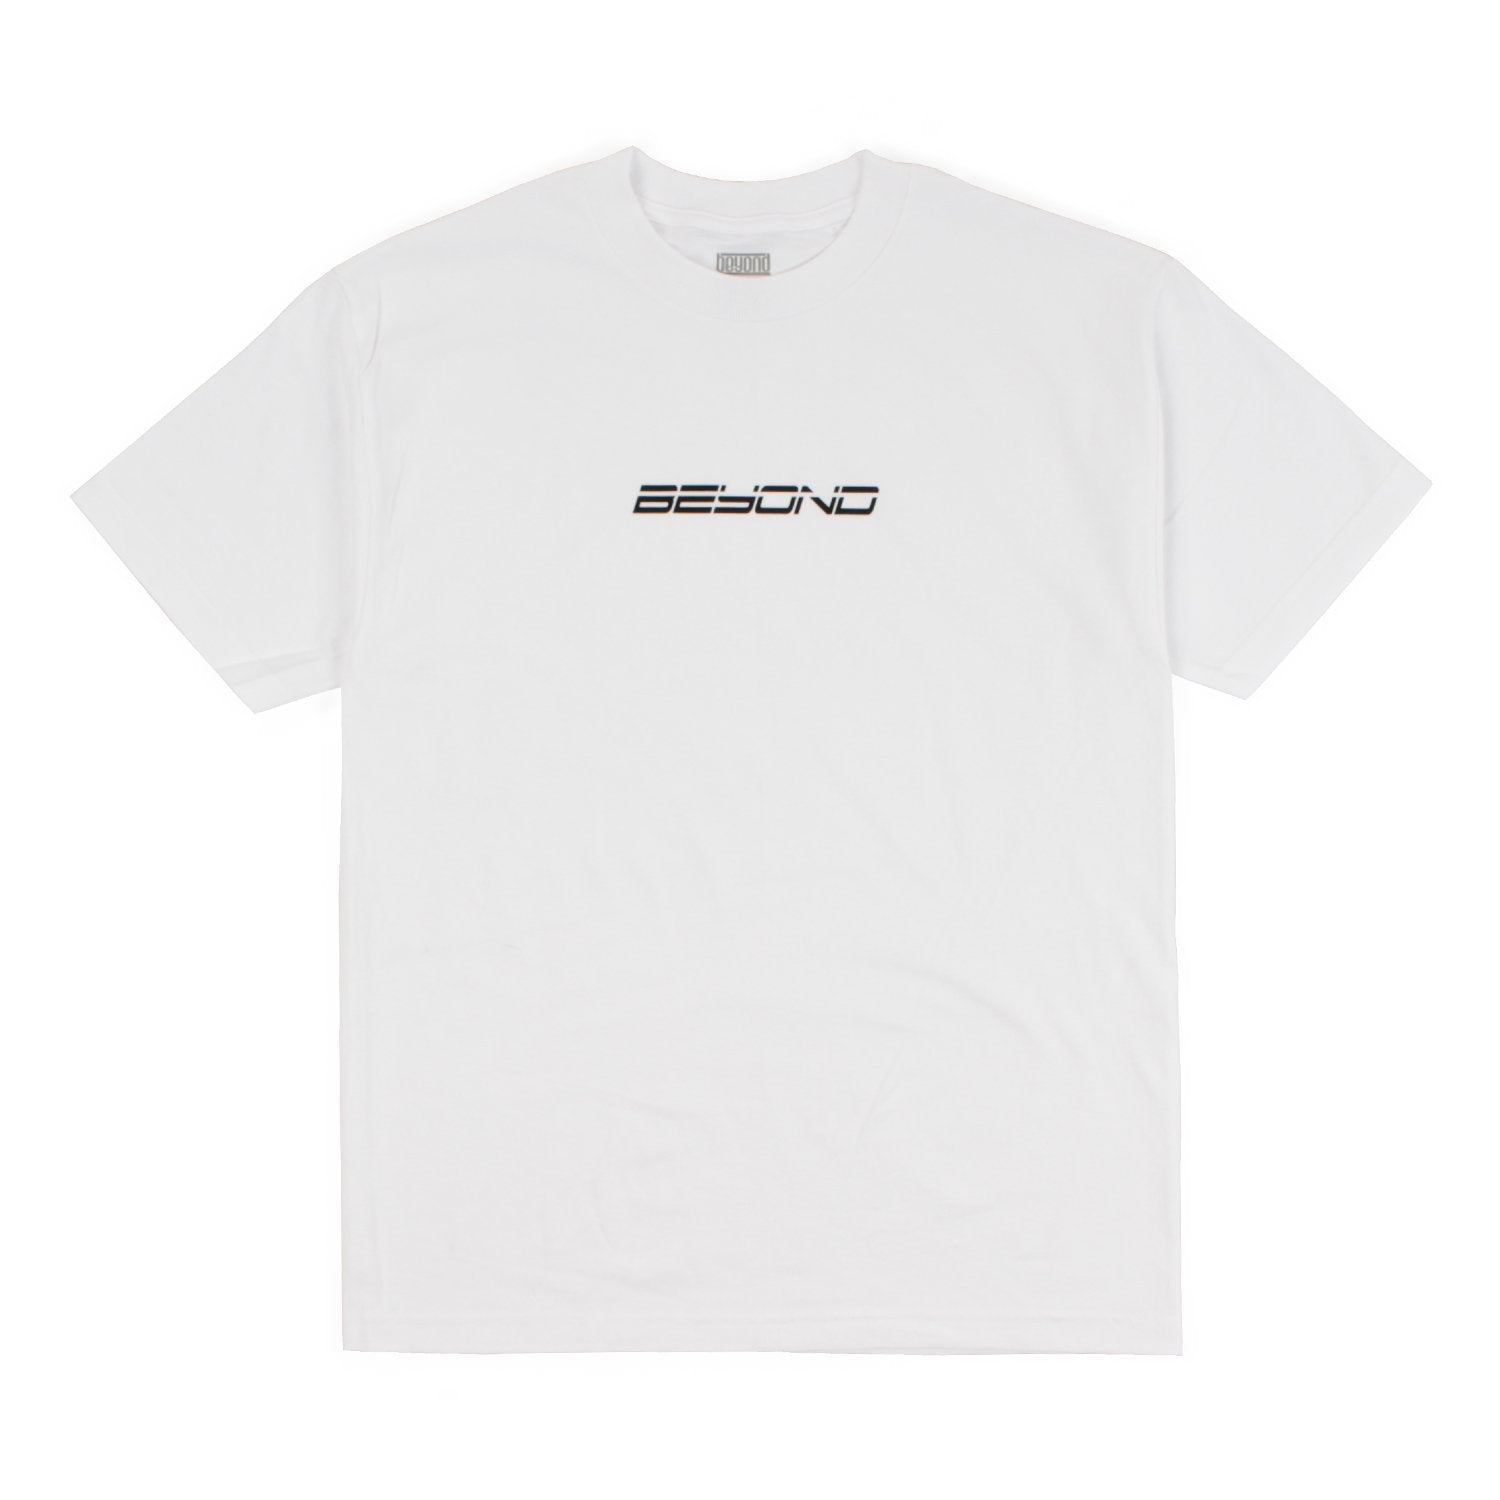 Beyond Turbo Tee Product Photo #1